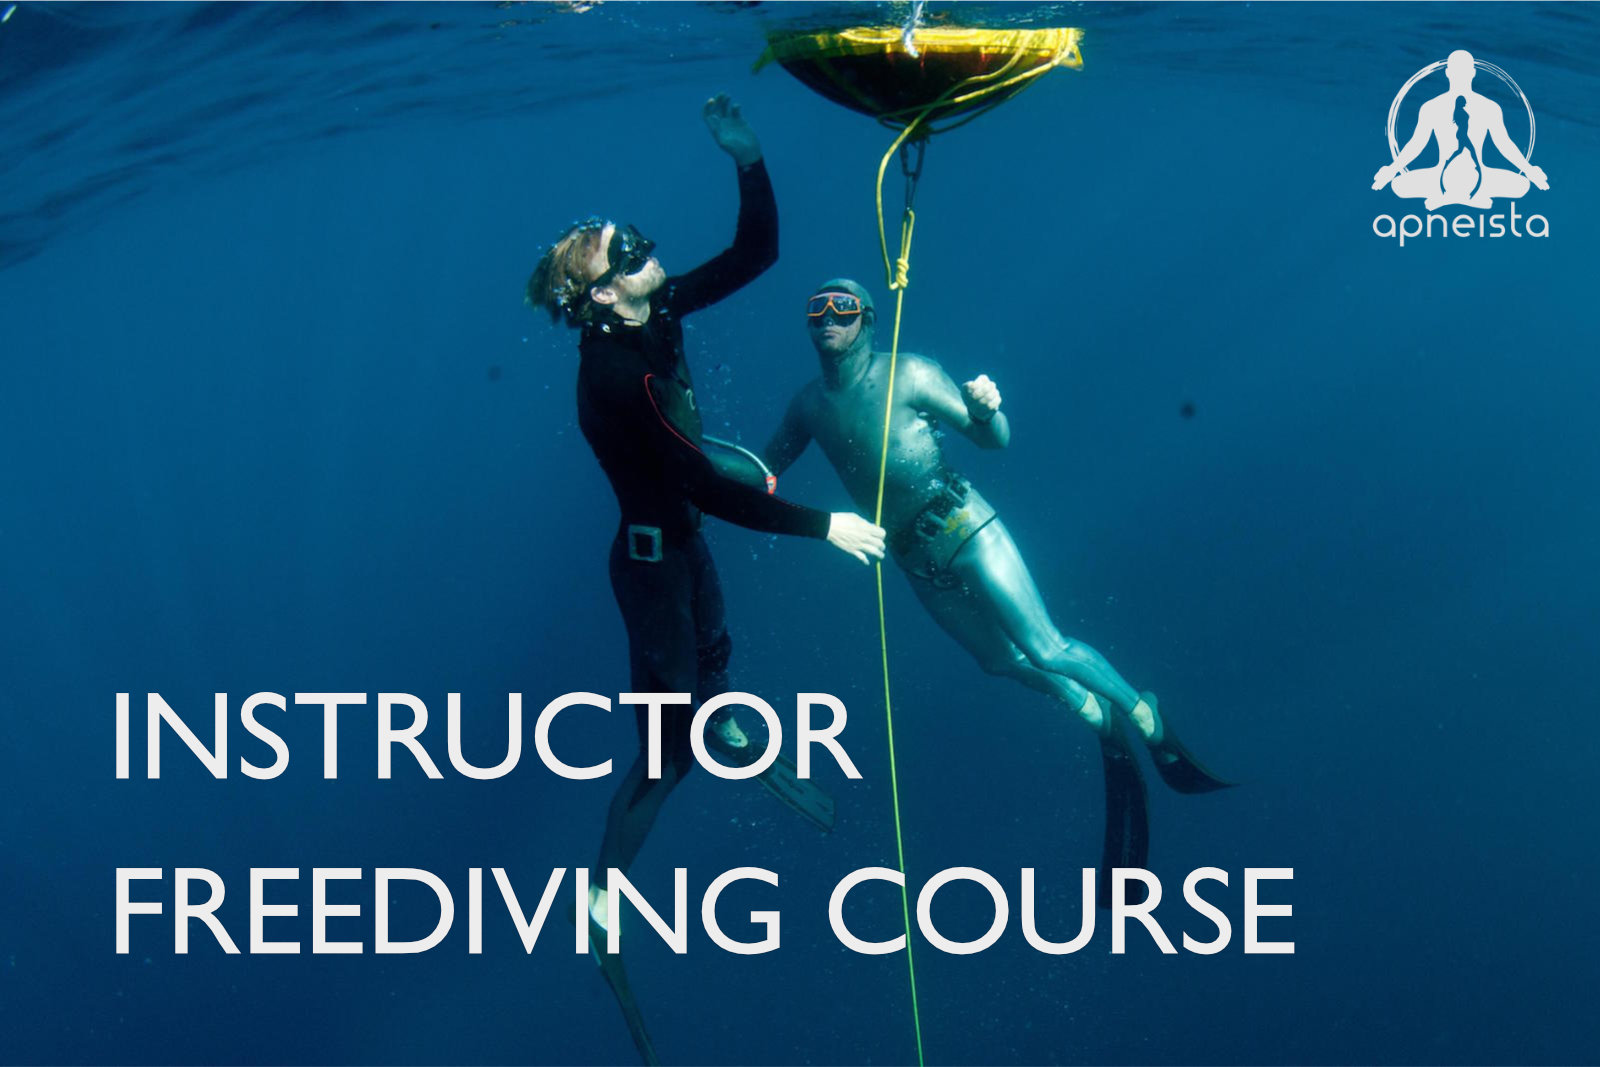 Picture of instructor freediving course